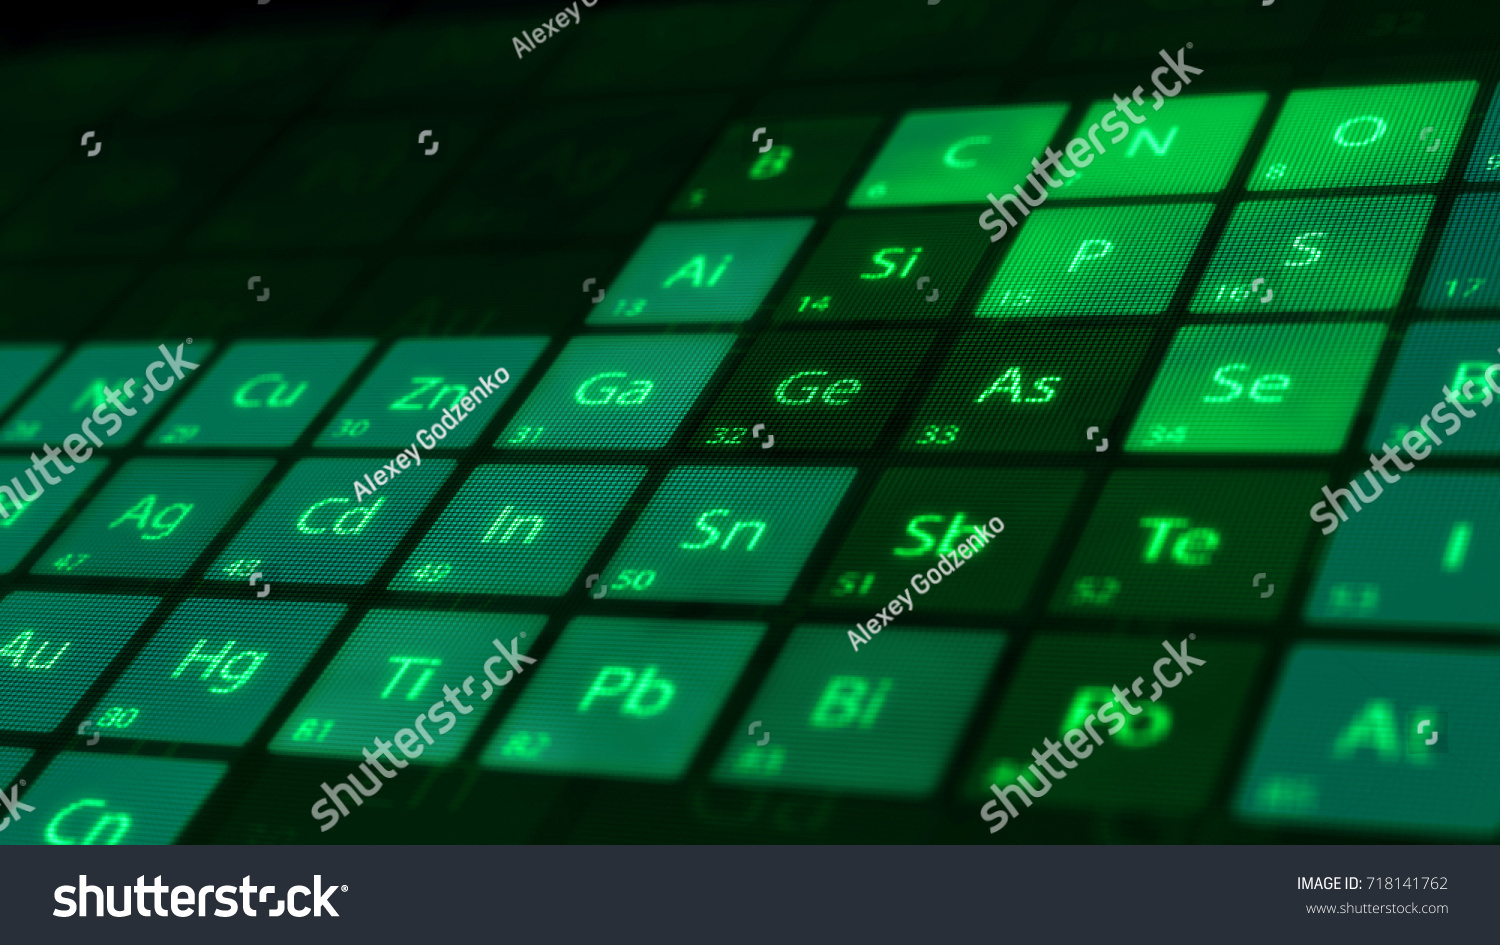 Perspective closeup periodic table elements on stock illustration perspective closeup of the periodic table of the elements on a dark background macro shot gamestrikefo Choice Image